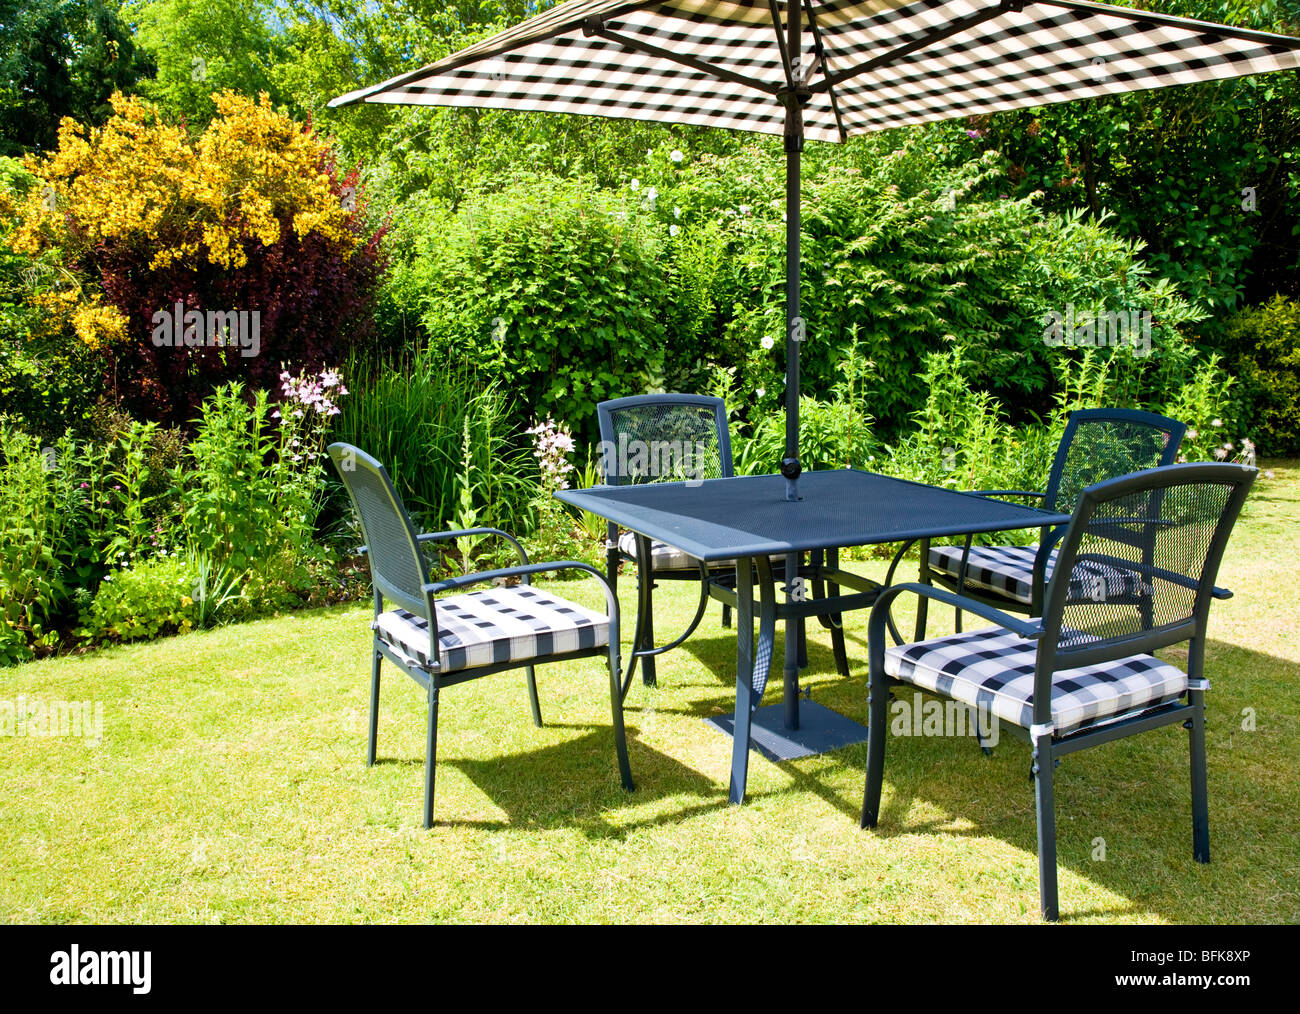 modern garden furniture set out on a lawn in a typical